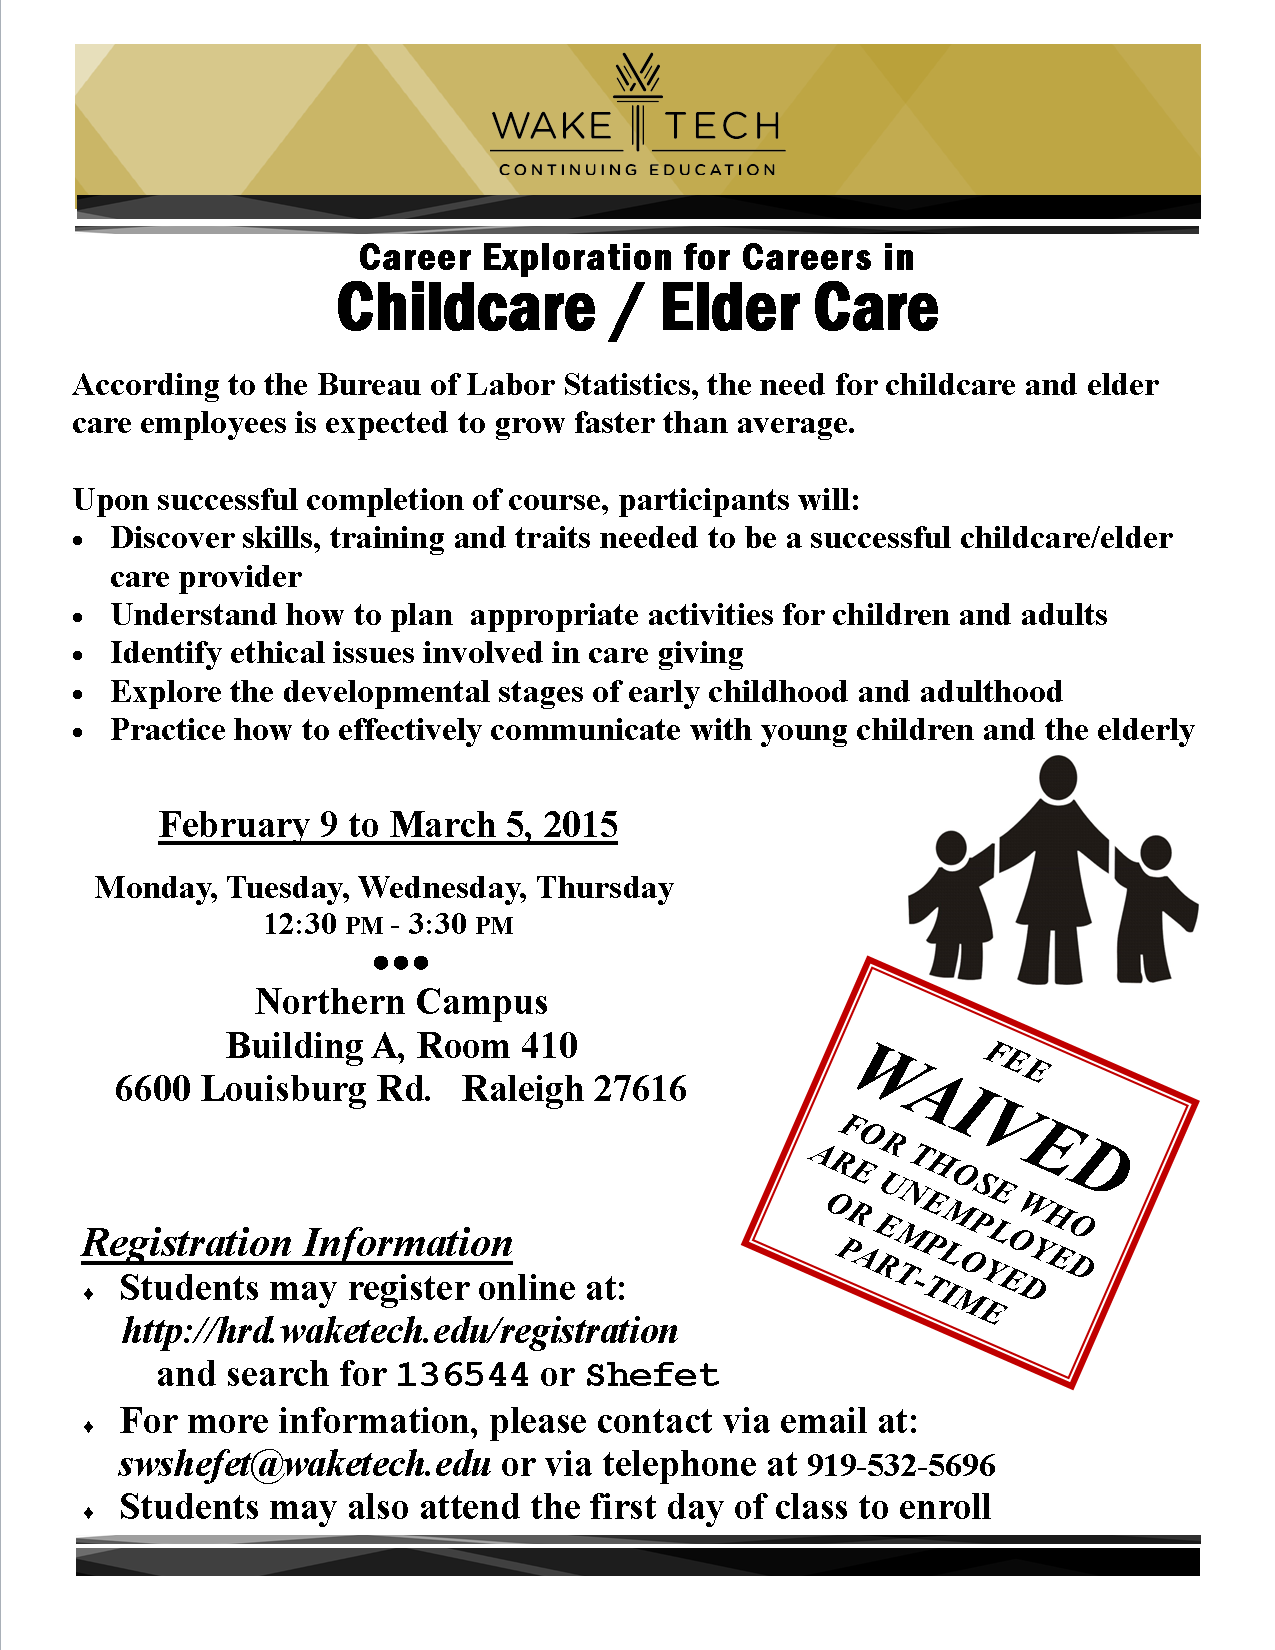 Check out career opportunities in Childcare and the